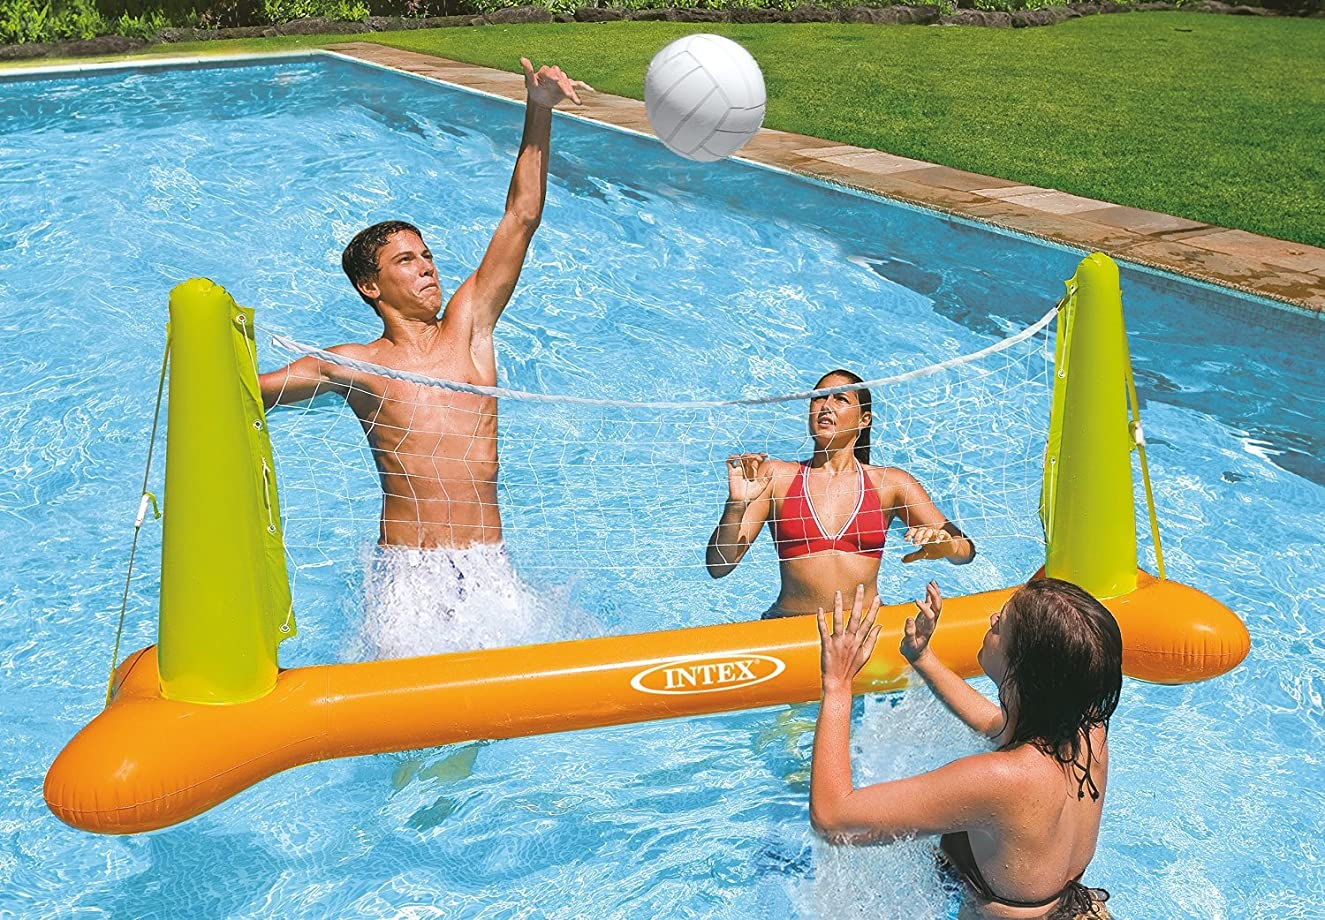 Intex Kids Backyard Fun Play Pool Volleyball Game Slide Inflatable Center Summer Outdoor Pool Fun Swimming